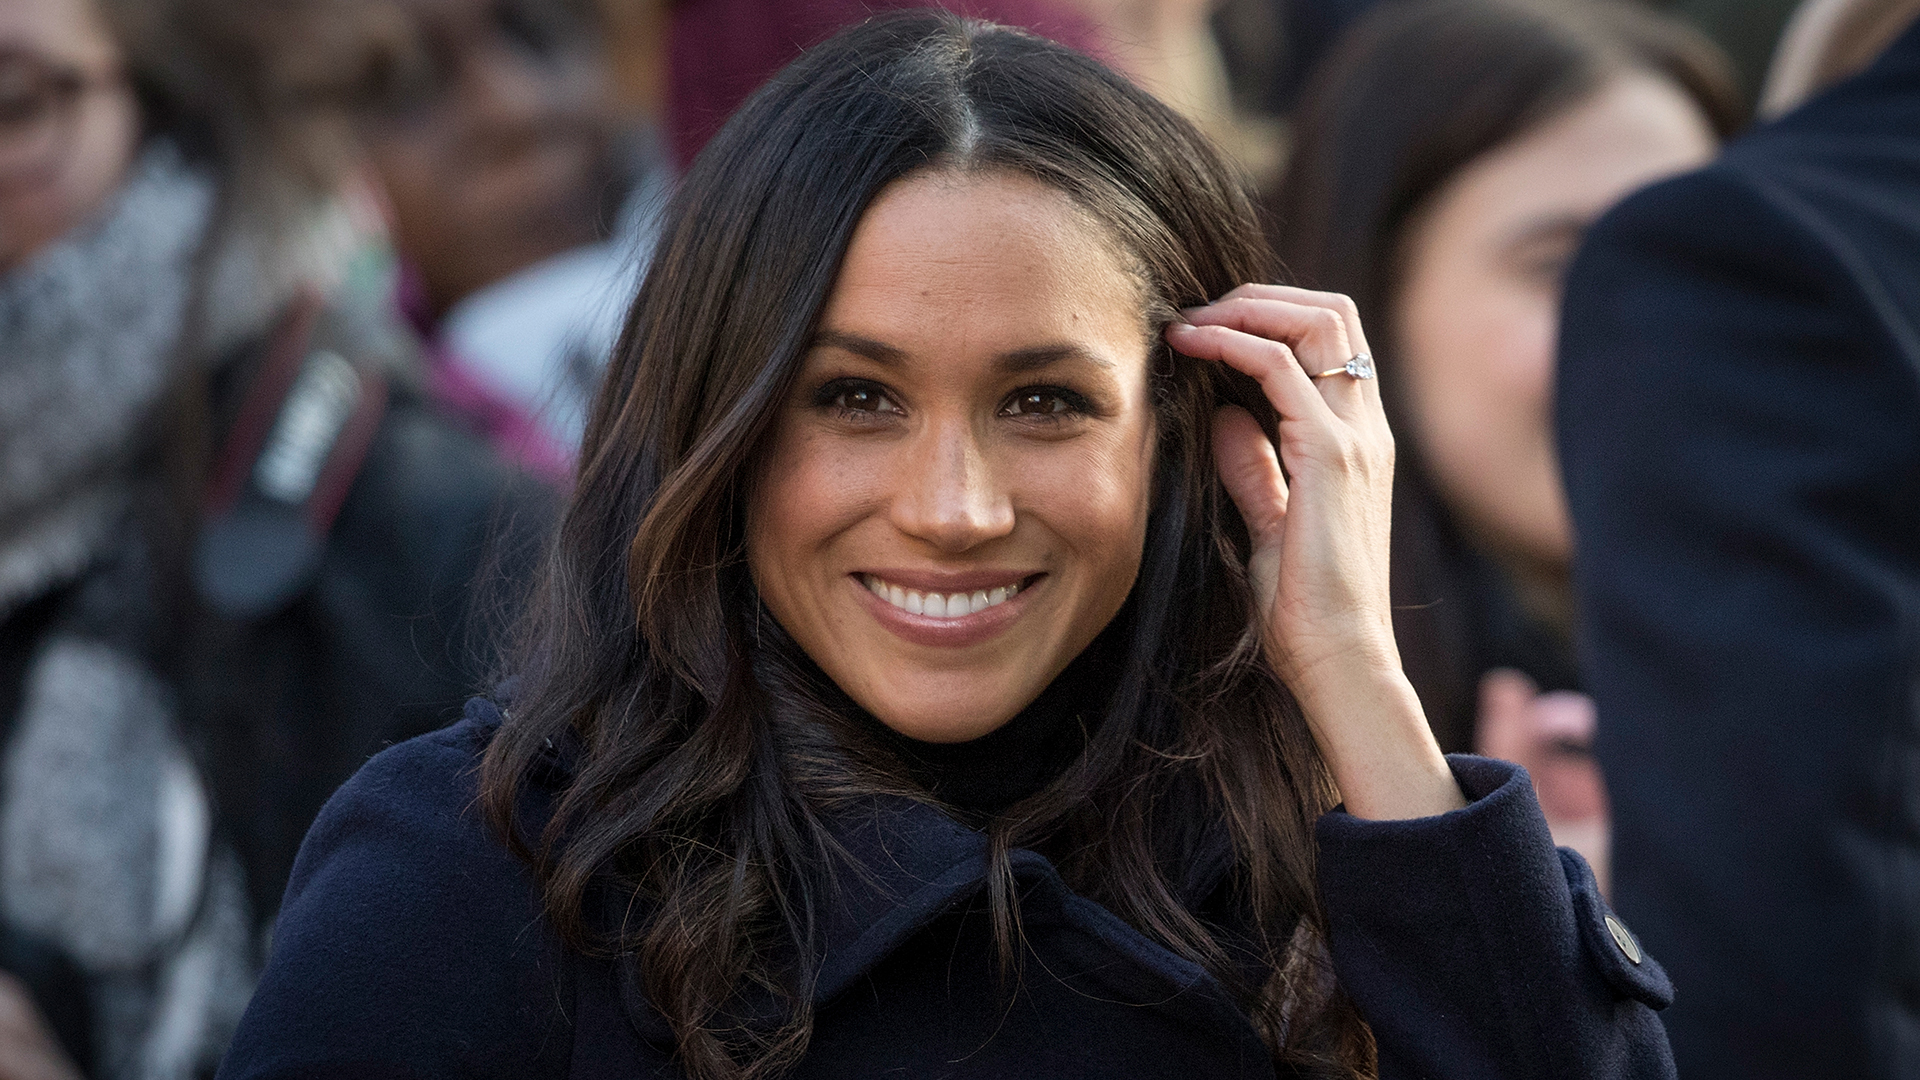 Meghan Markle's Freckles Were Photoshopped Out by a Magazine, and People Are Pissed